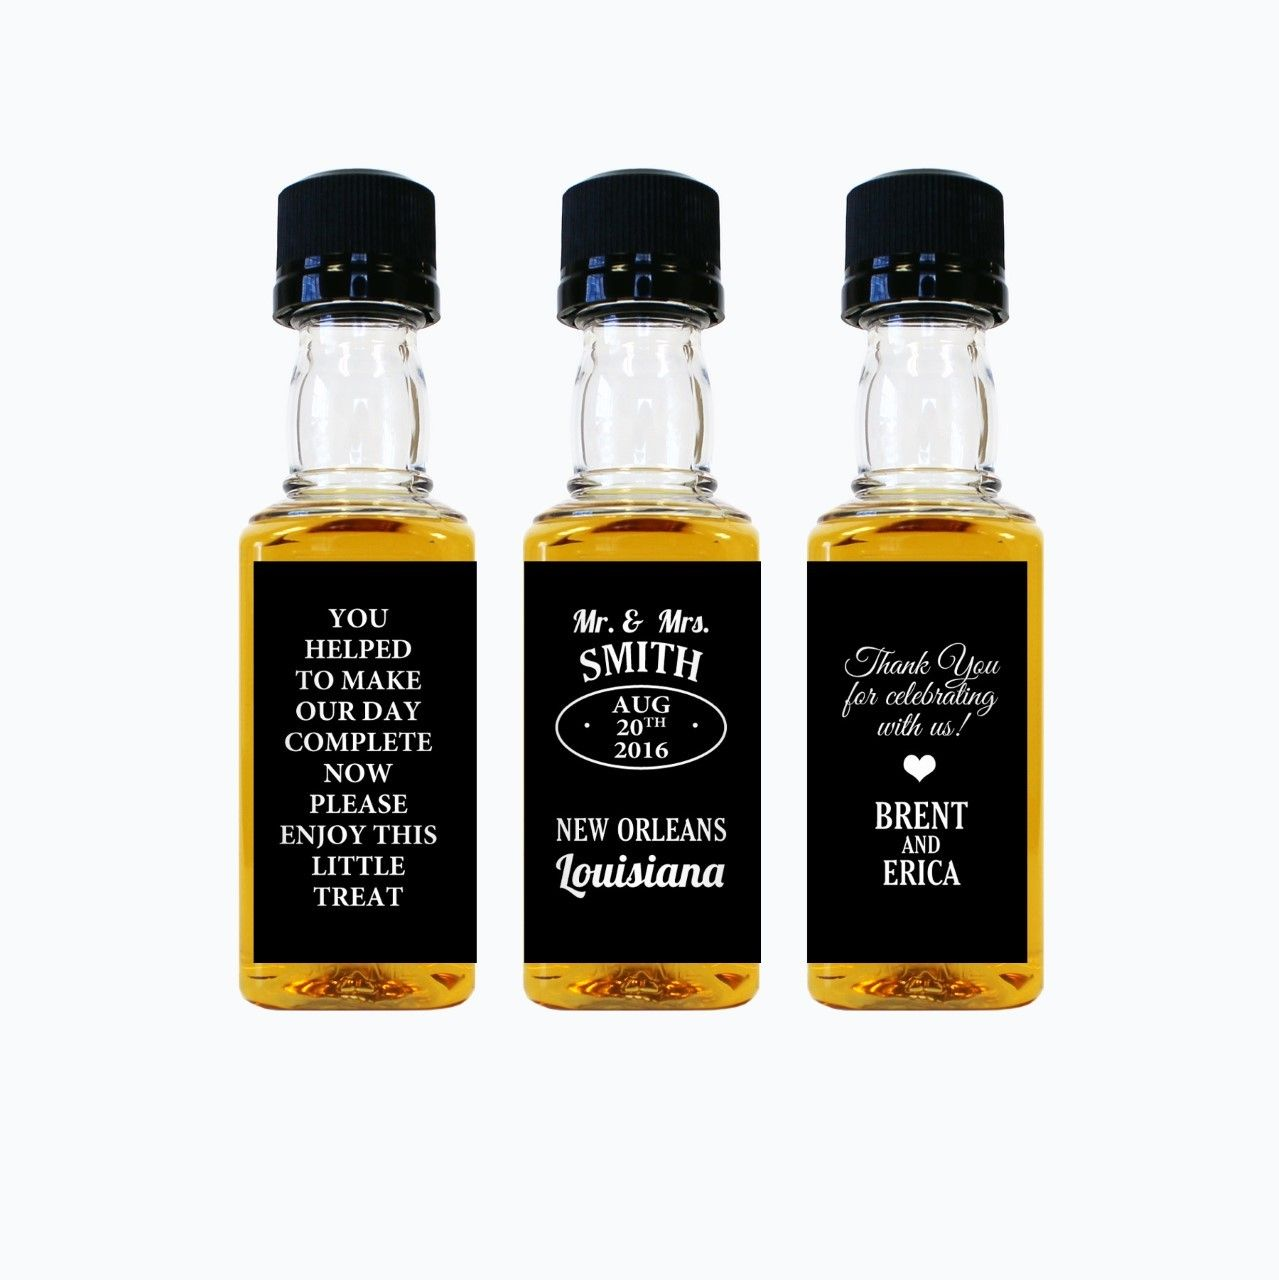 Jack Daniels Mini Bottle Wedding Favors | Mini bottles, Favors and ...